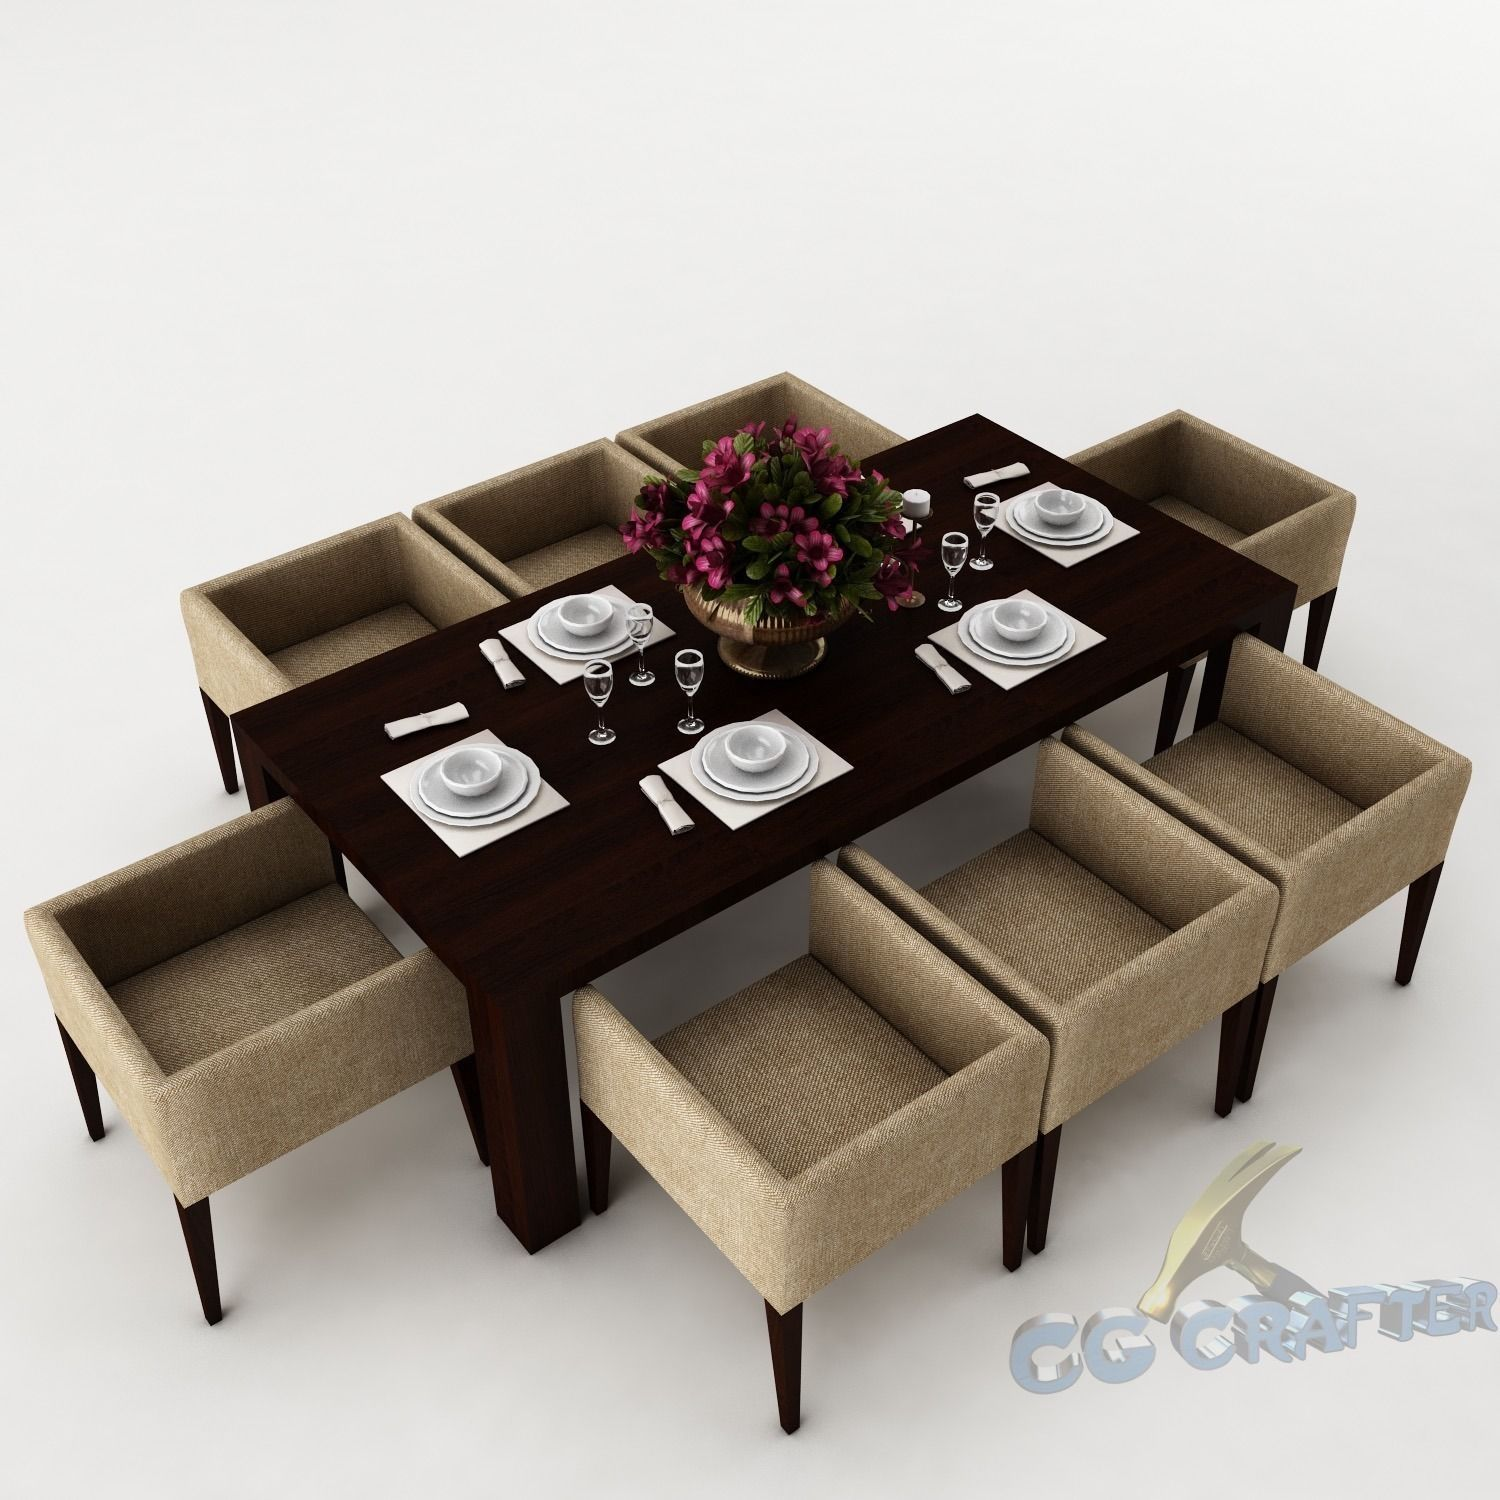 Dining table set 43 3d model max obj 3ds fbx for Dining table models